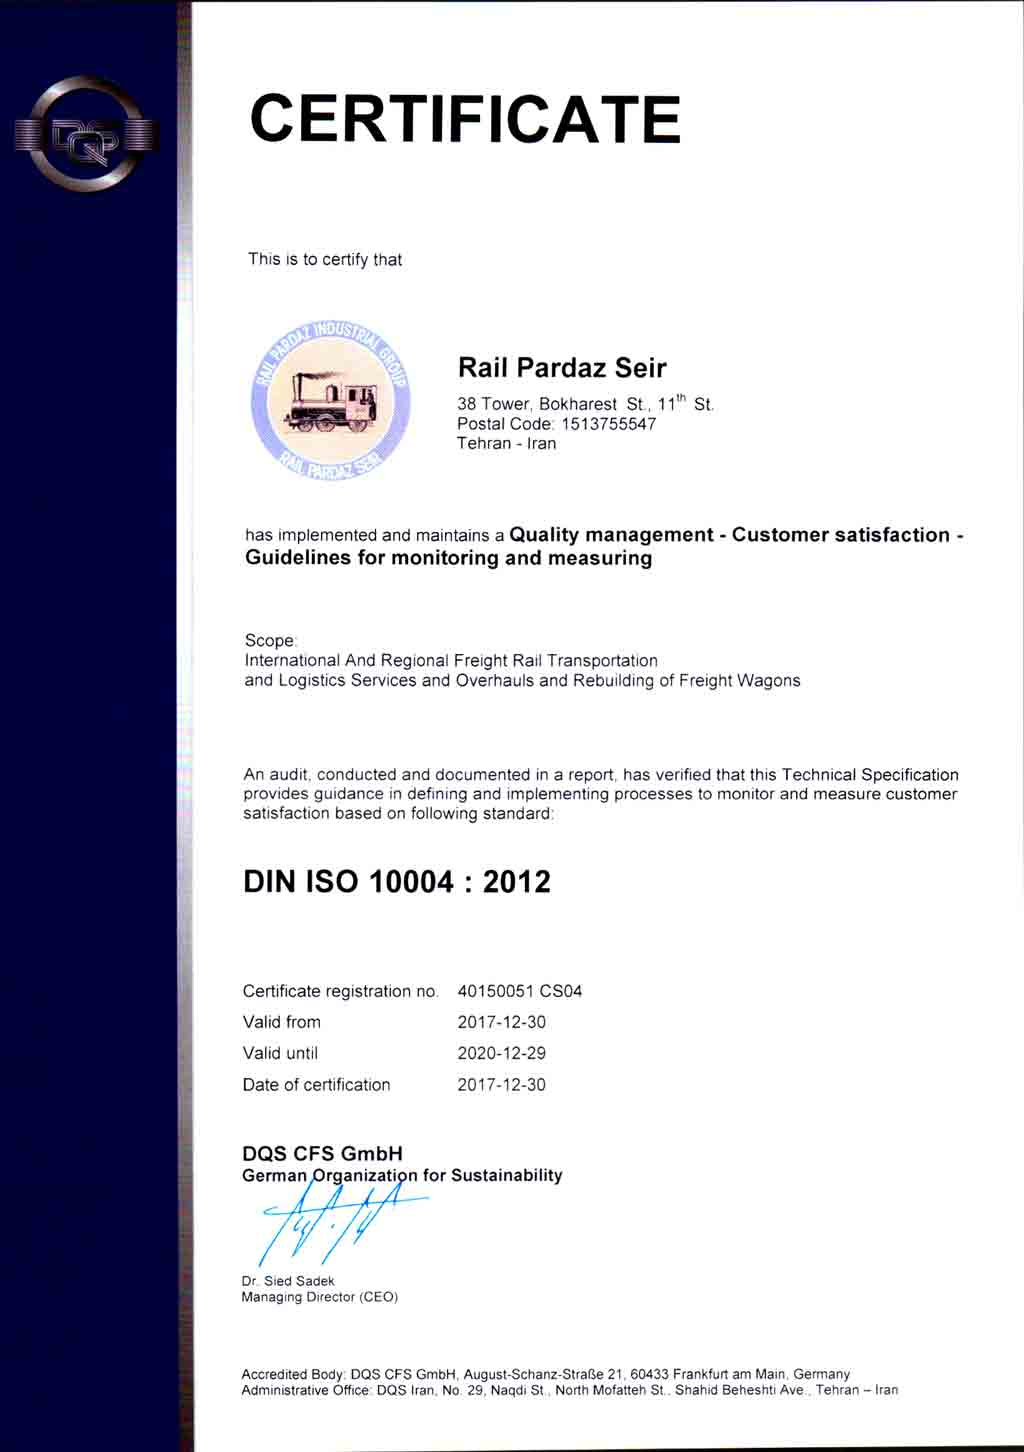 iso-10004-certificate